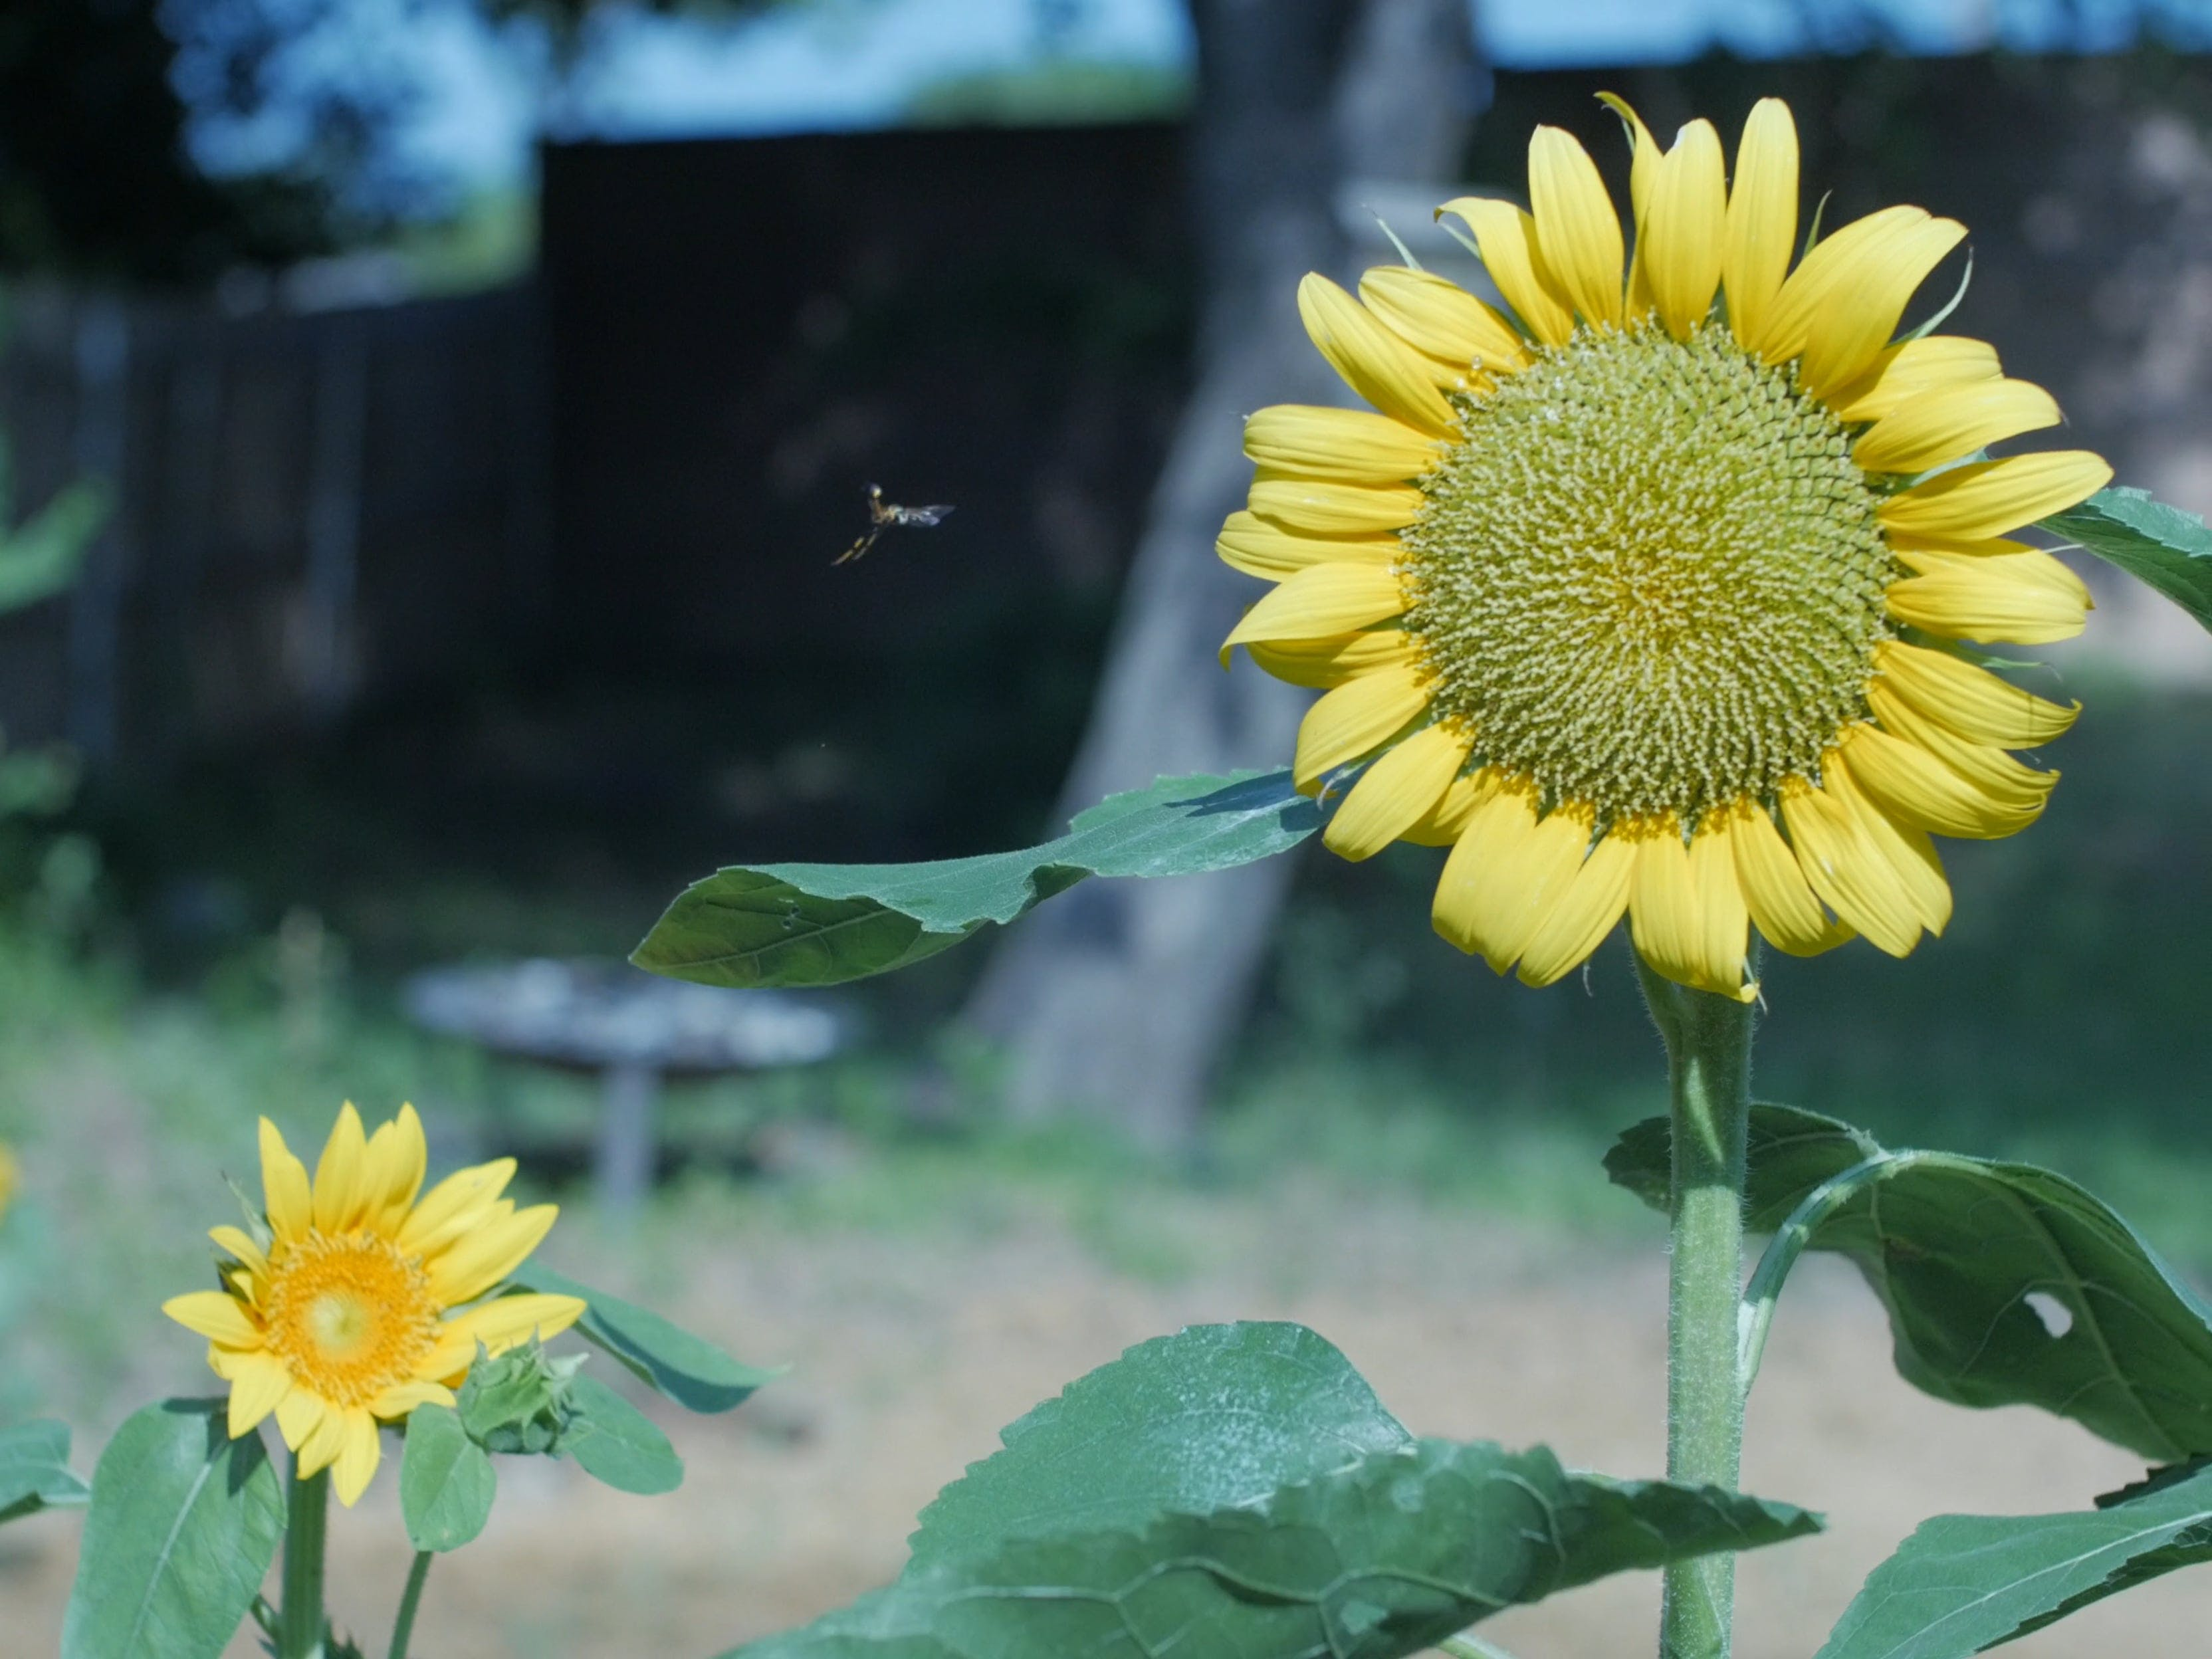 Blooming Sunflowers in the Garden